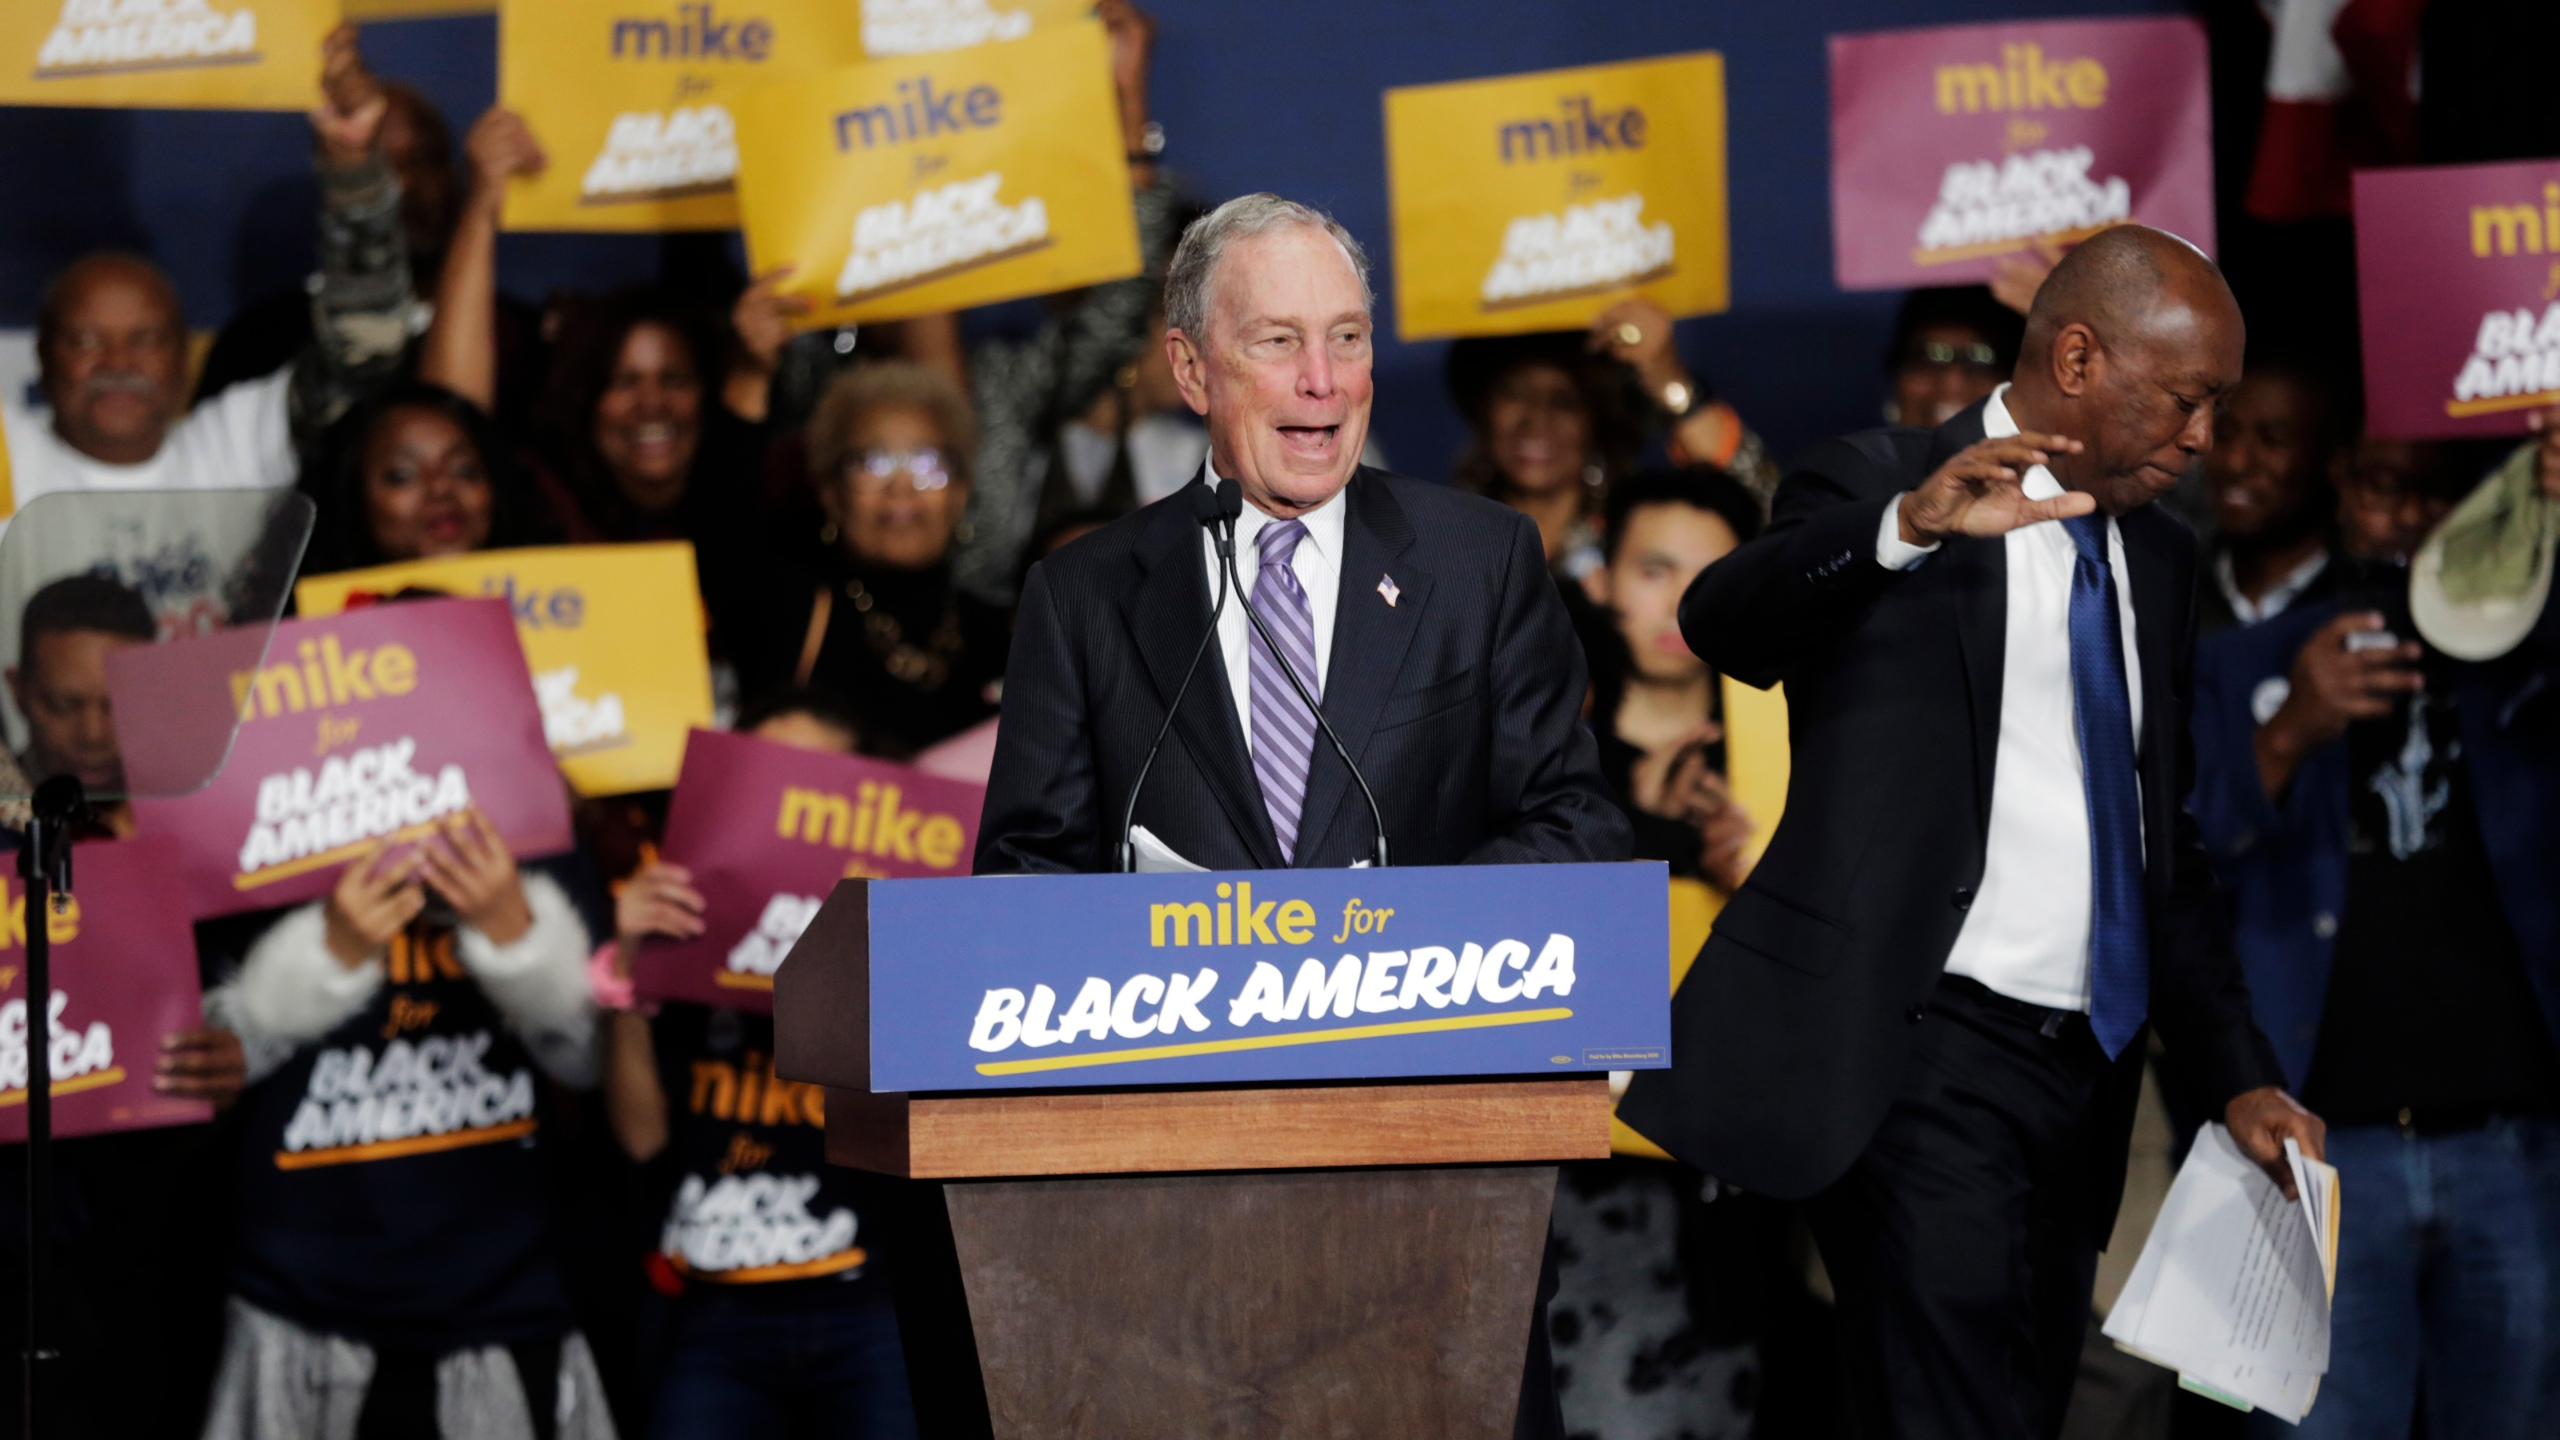 Michael Bloomberg, Mike Bloomberg, Sylvester Turner